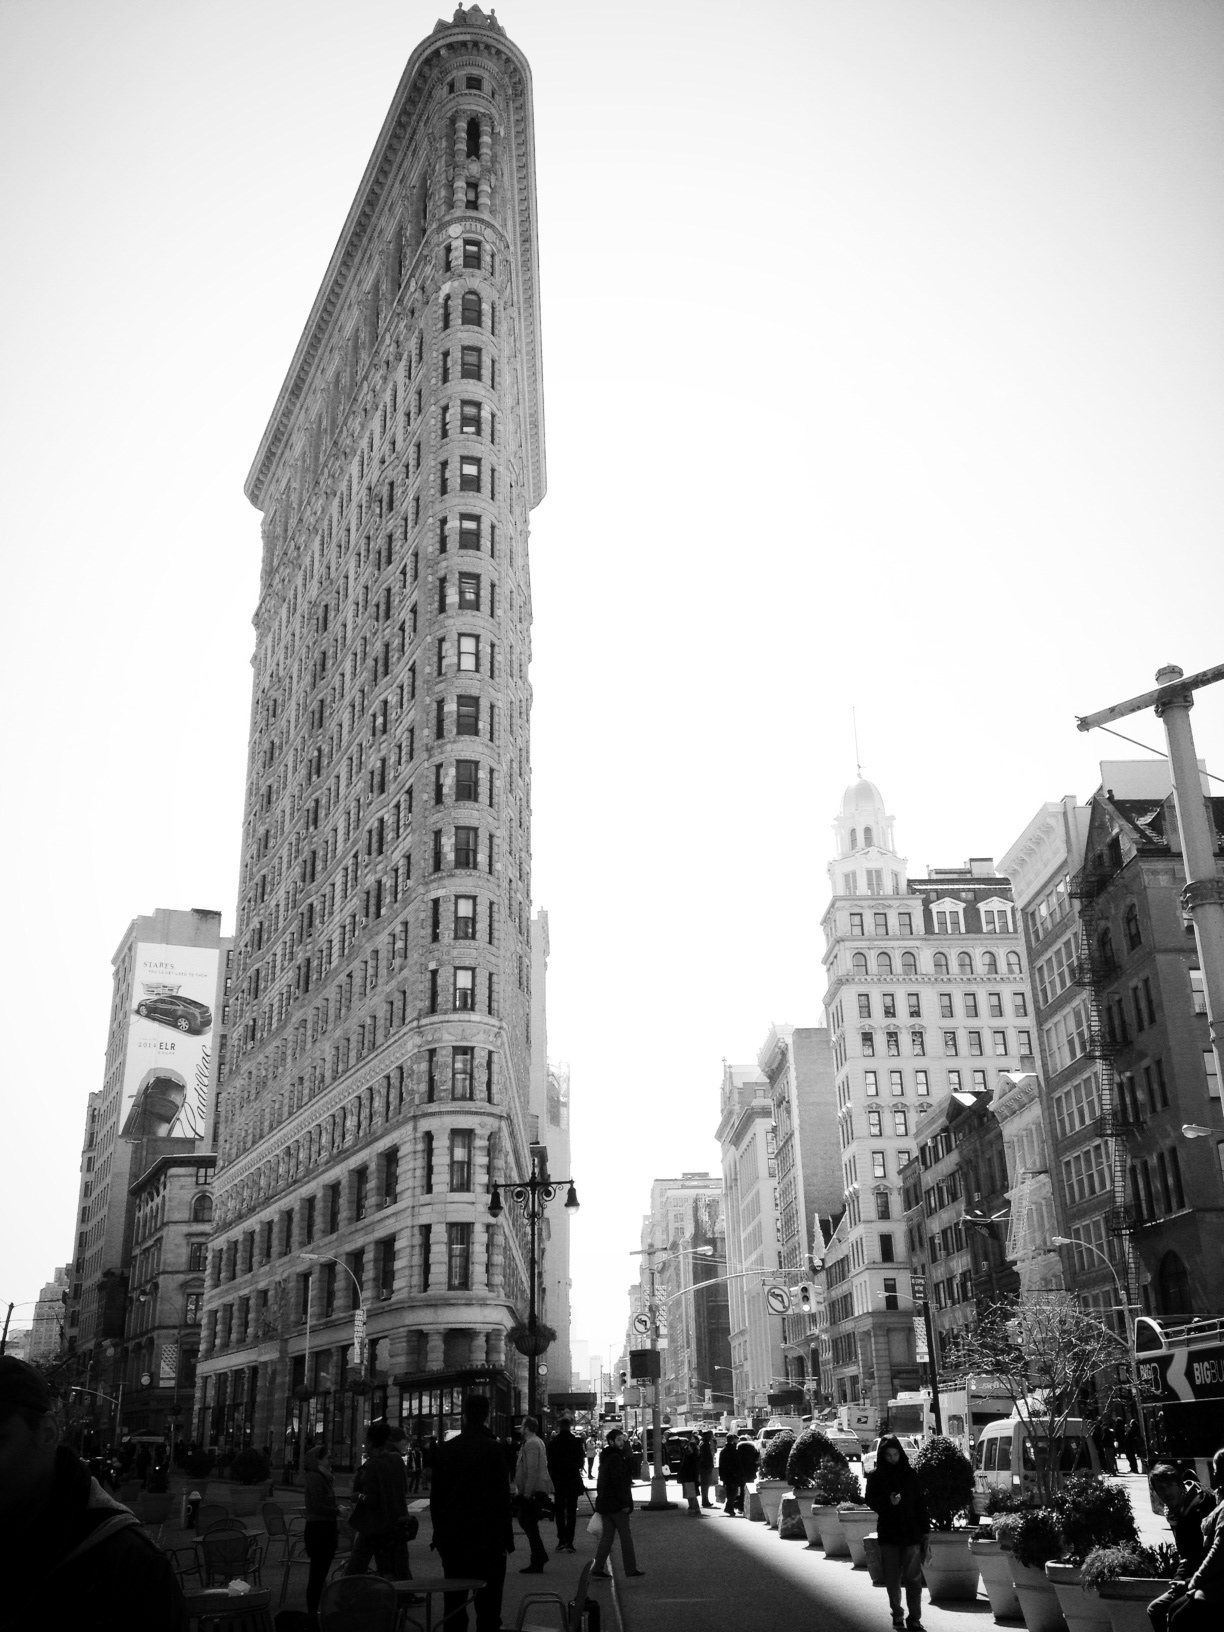 The Gallery is located in the bustling Flatiron District on 5th Avenue between 19th & 20th Street.